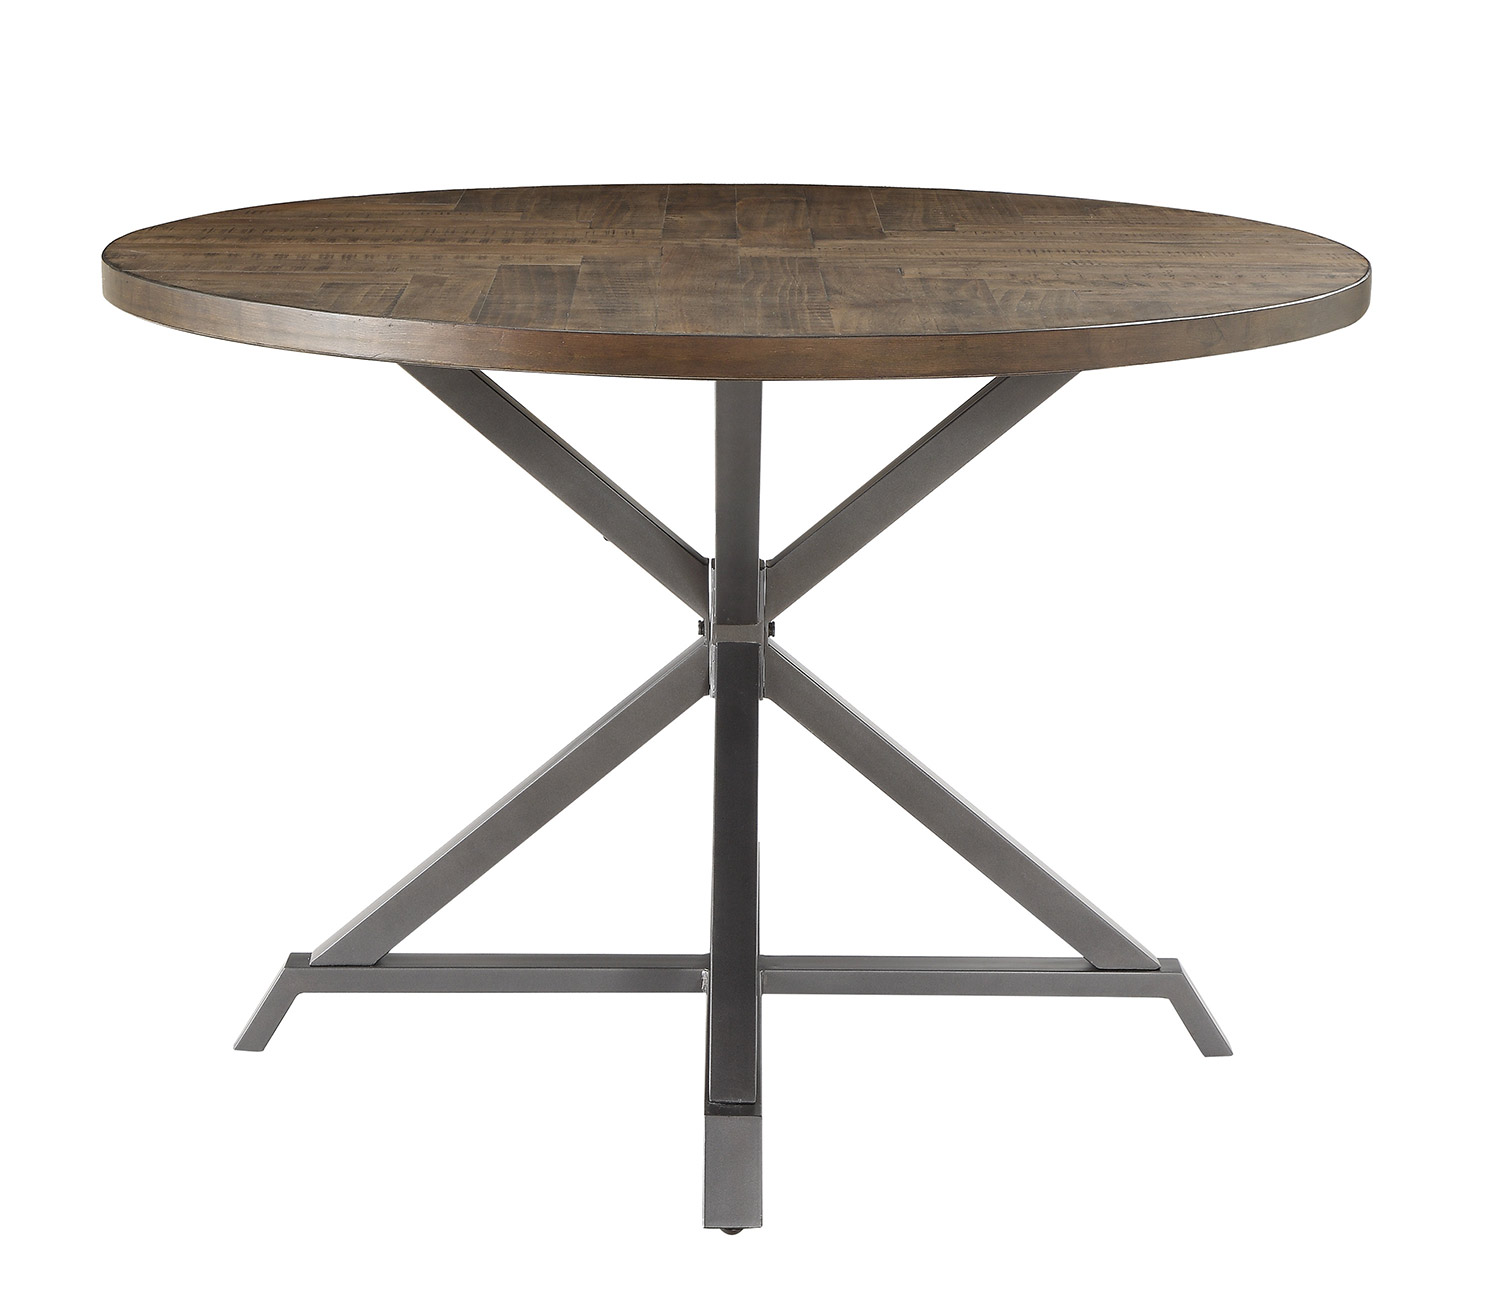 Homelegance Fideo Round Dining Table - Rustic - Gray Metal